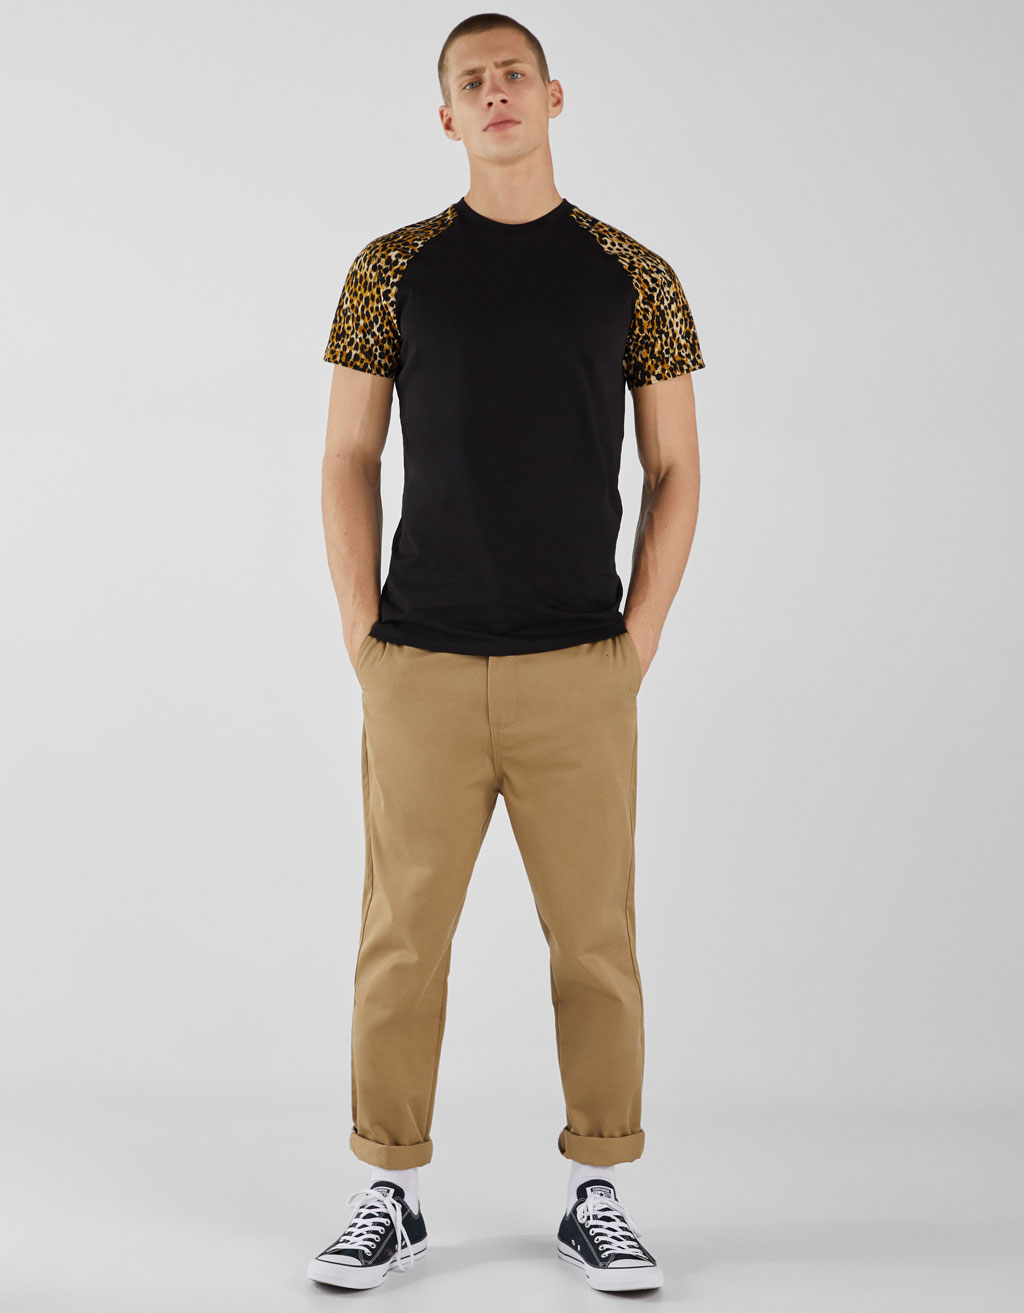 Raglan sleeve T-shirt with leopard print